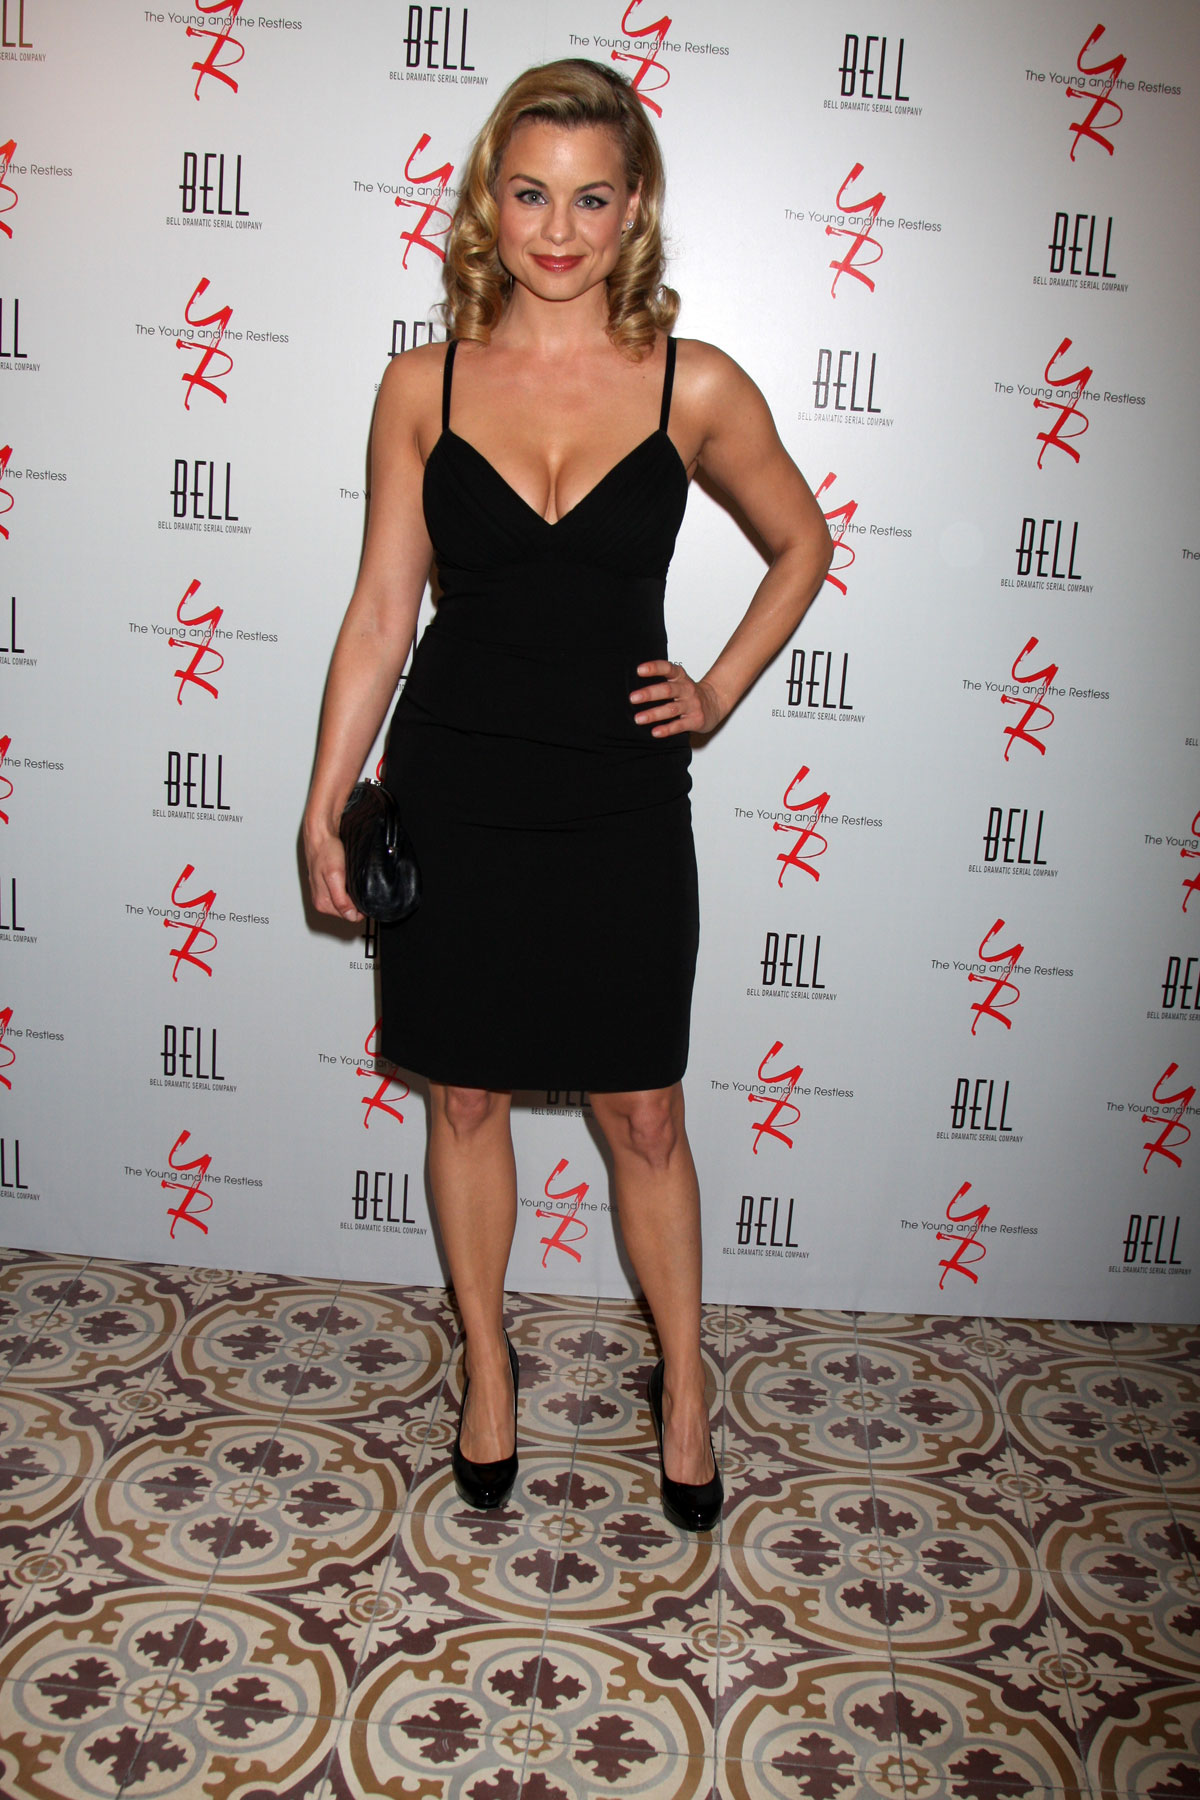 MILFs..de 35 a 45. - Página 5 JESSICA-COLLINS-at-The-Young-Restless-Aniversary-Party-in-West-Hollywood-1